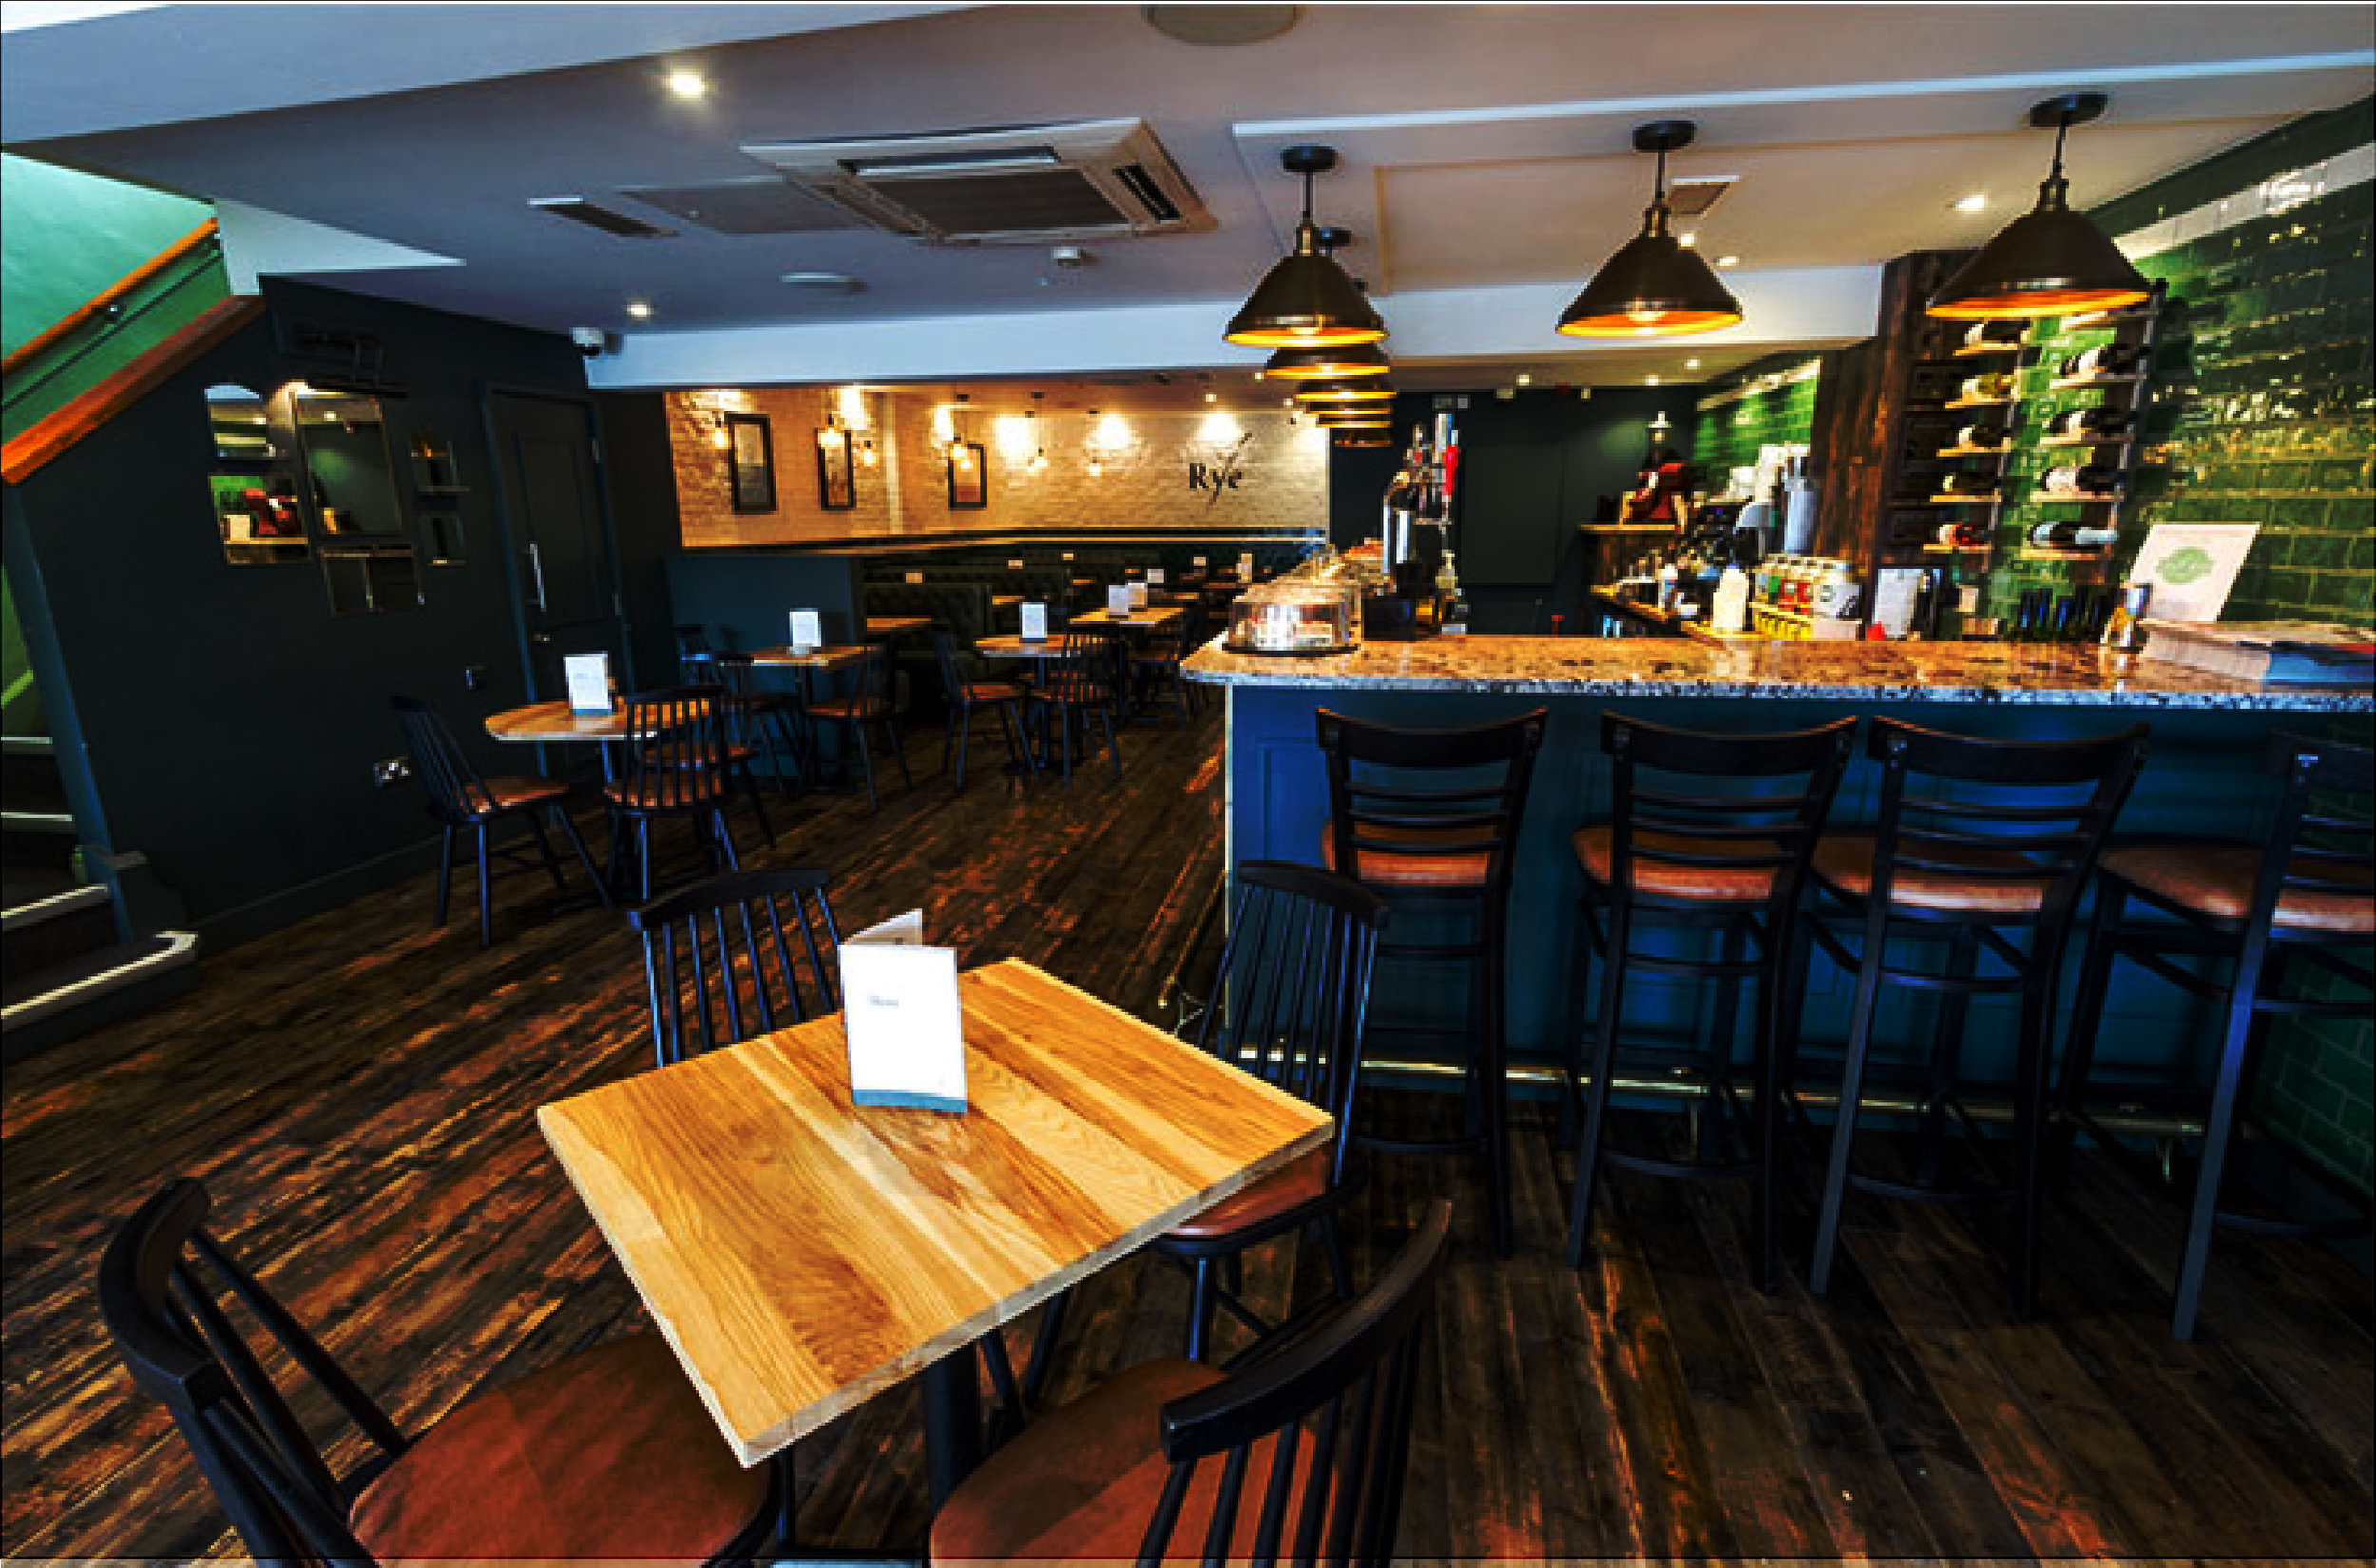 12308__rye-beeston-restaurant-shot-1-01.jpg